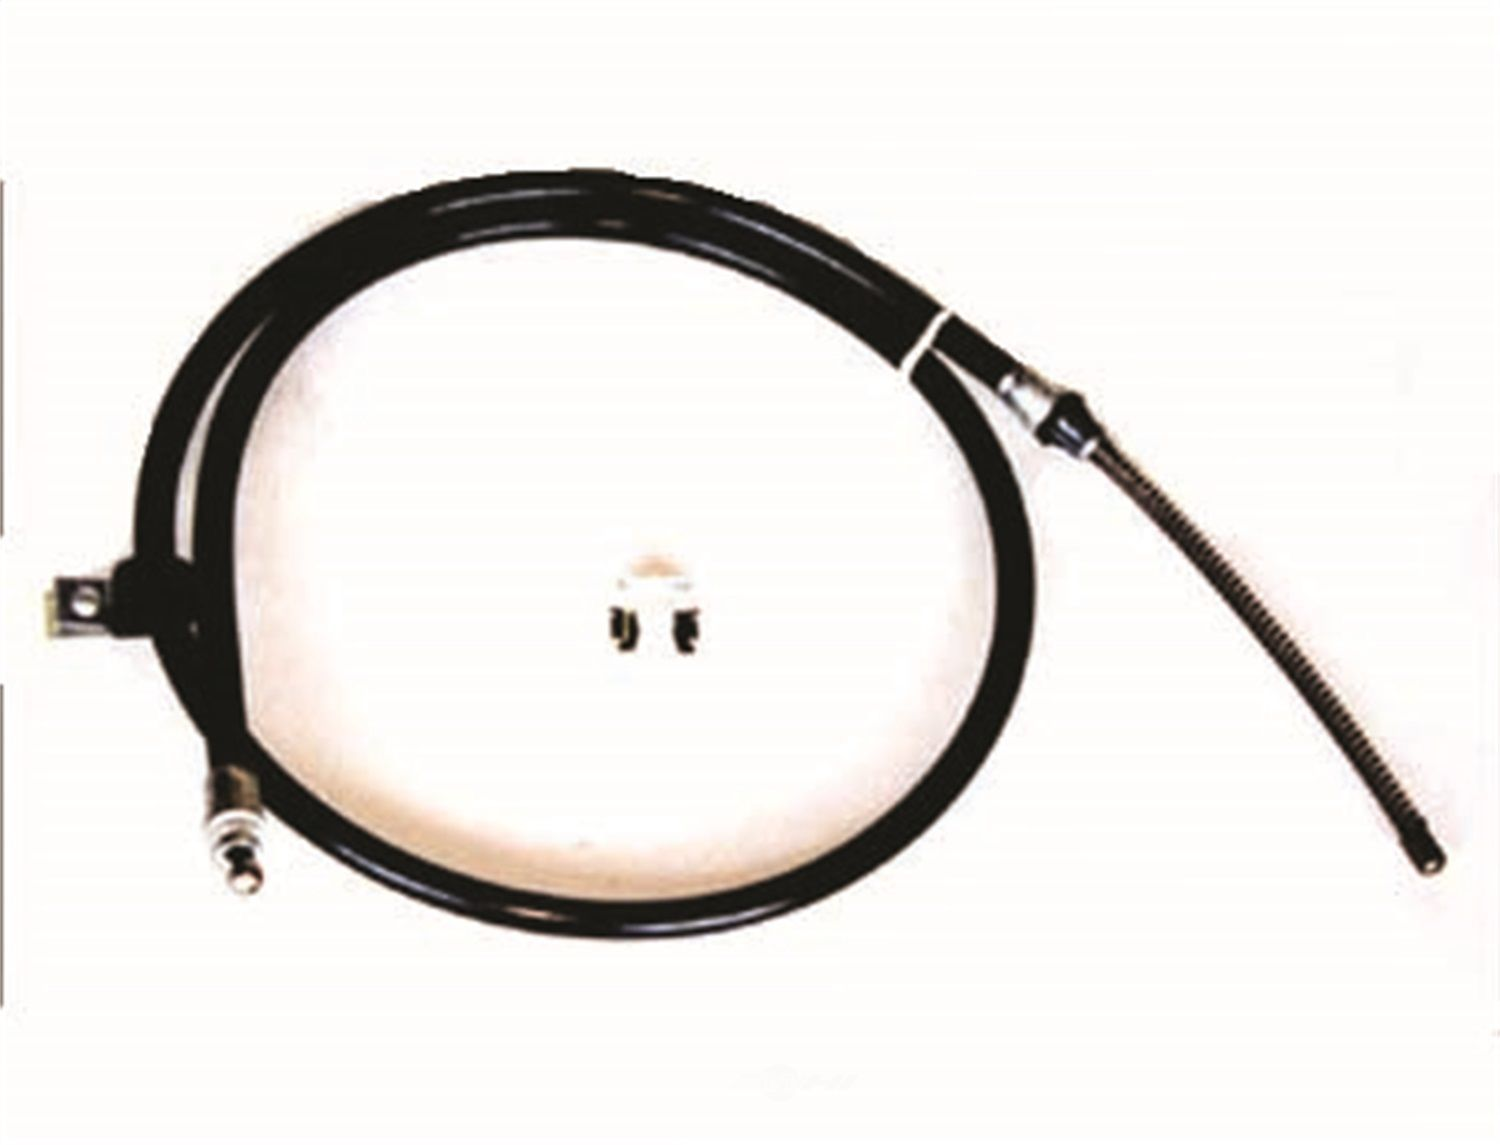 Parking Brake Cable Rear Right Omix 16730 08 Fits 76